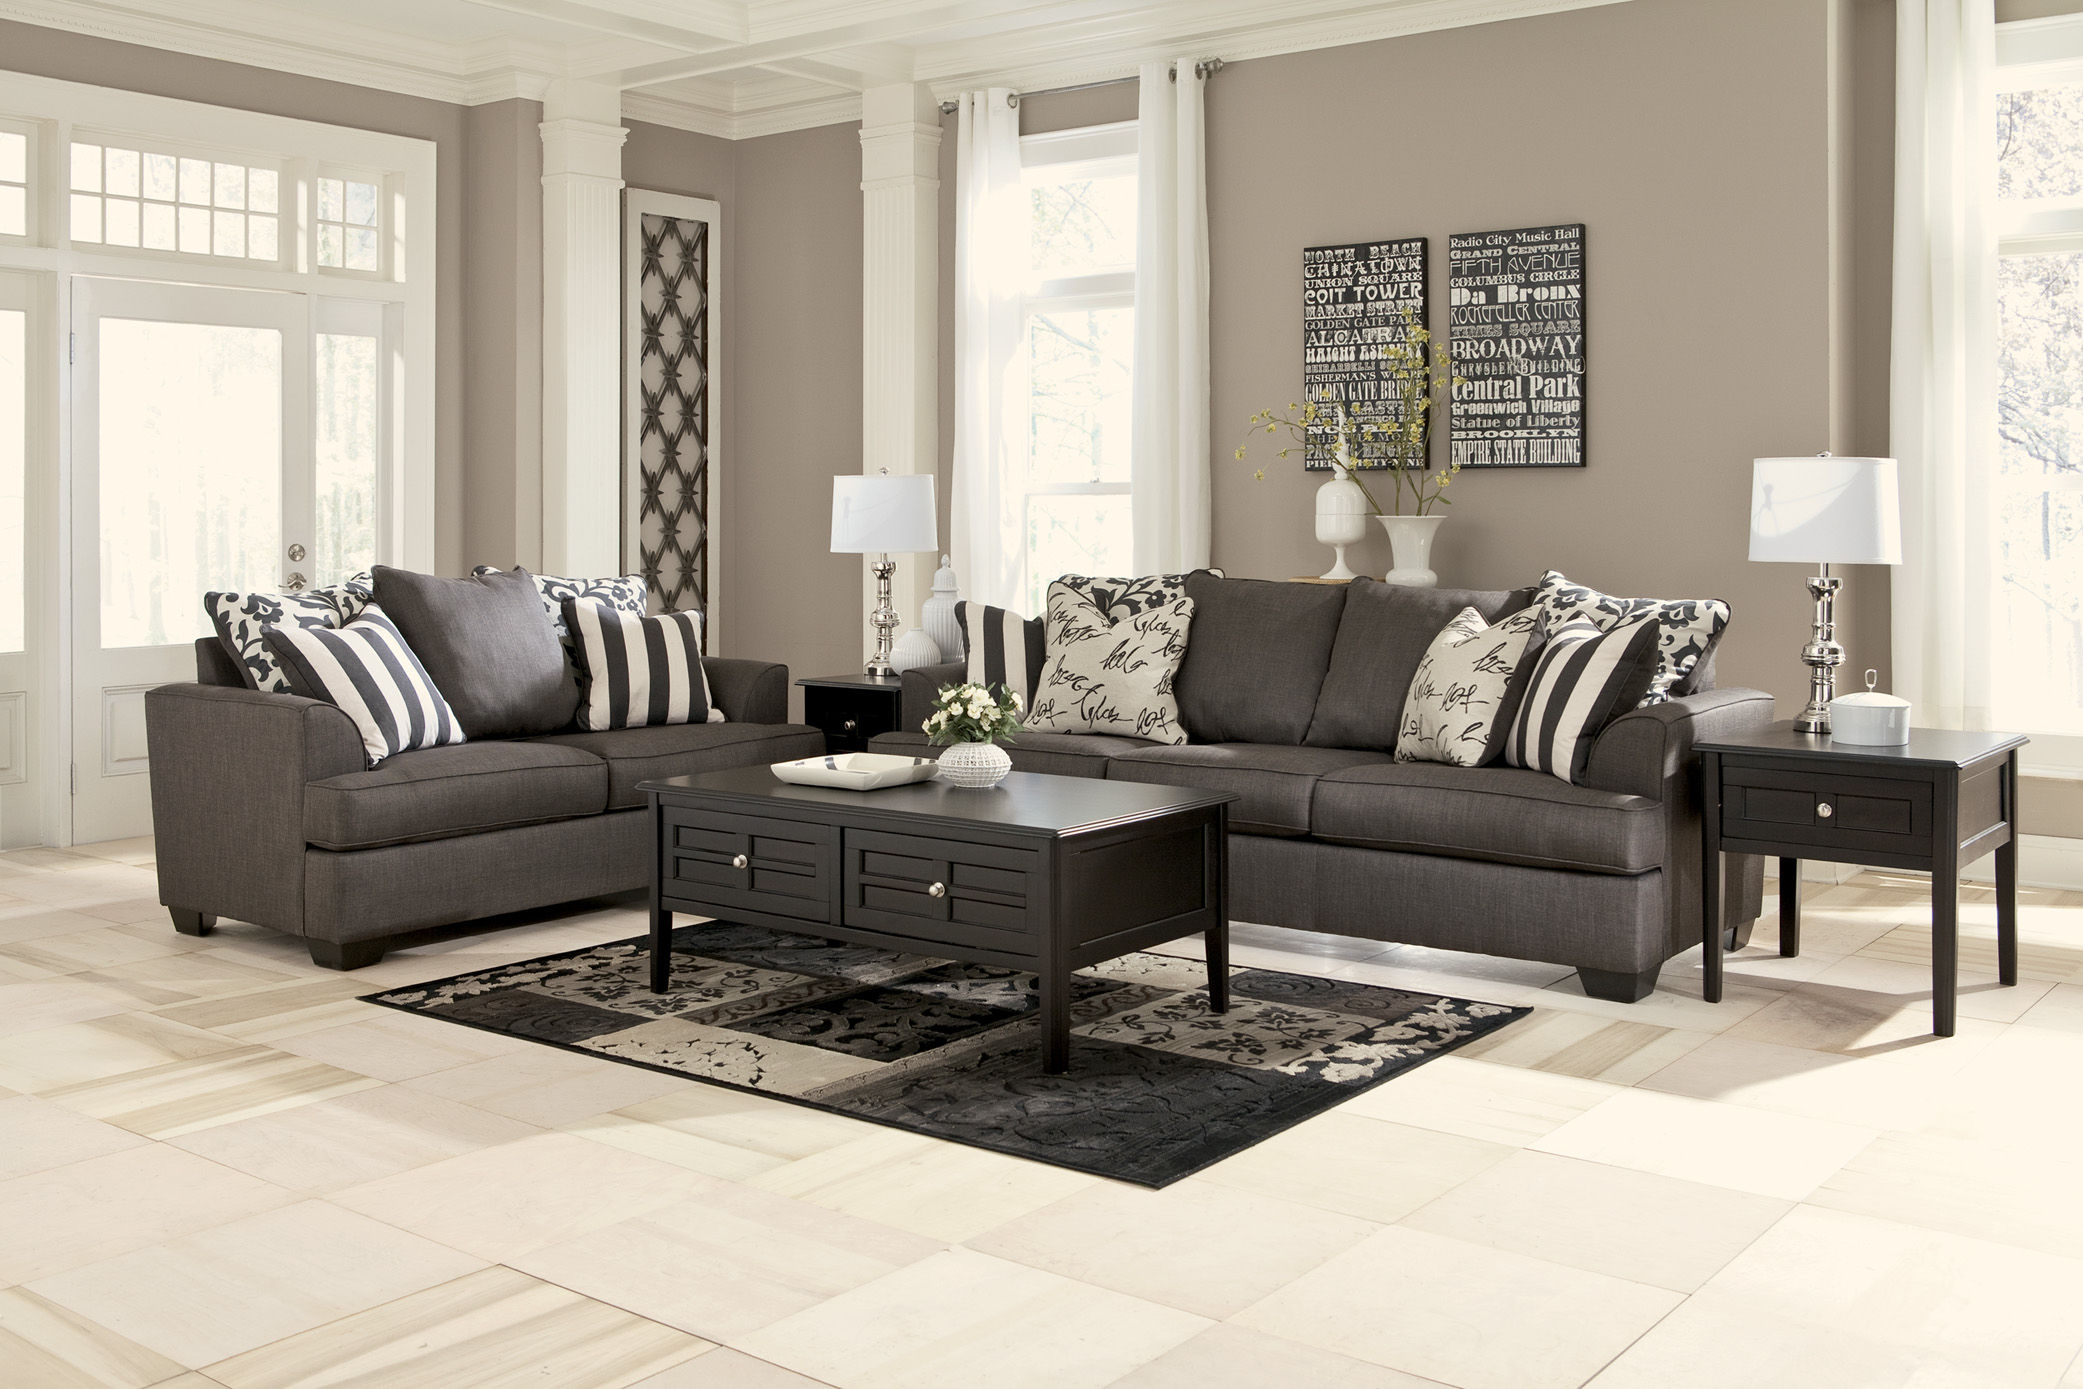 Levon contemporary charcoal fabric living room set for Living room set deals